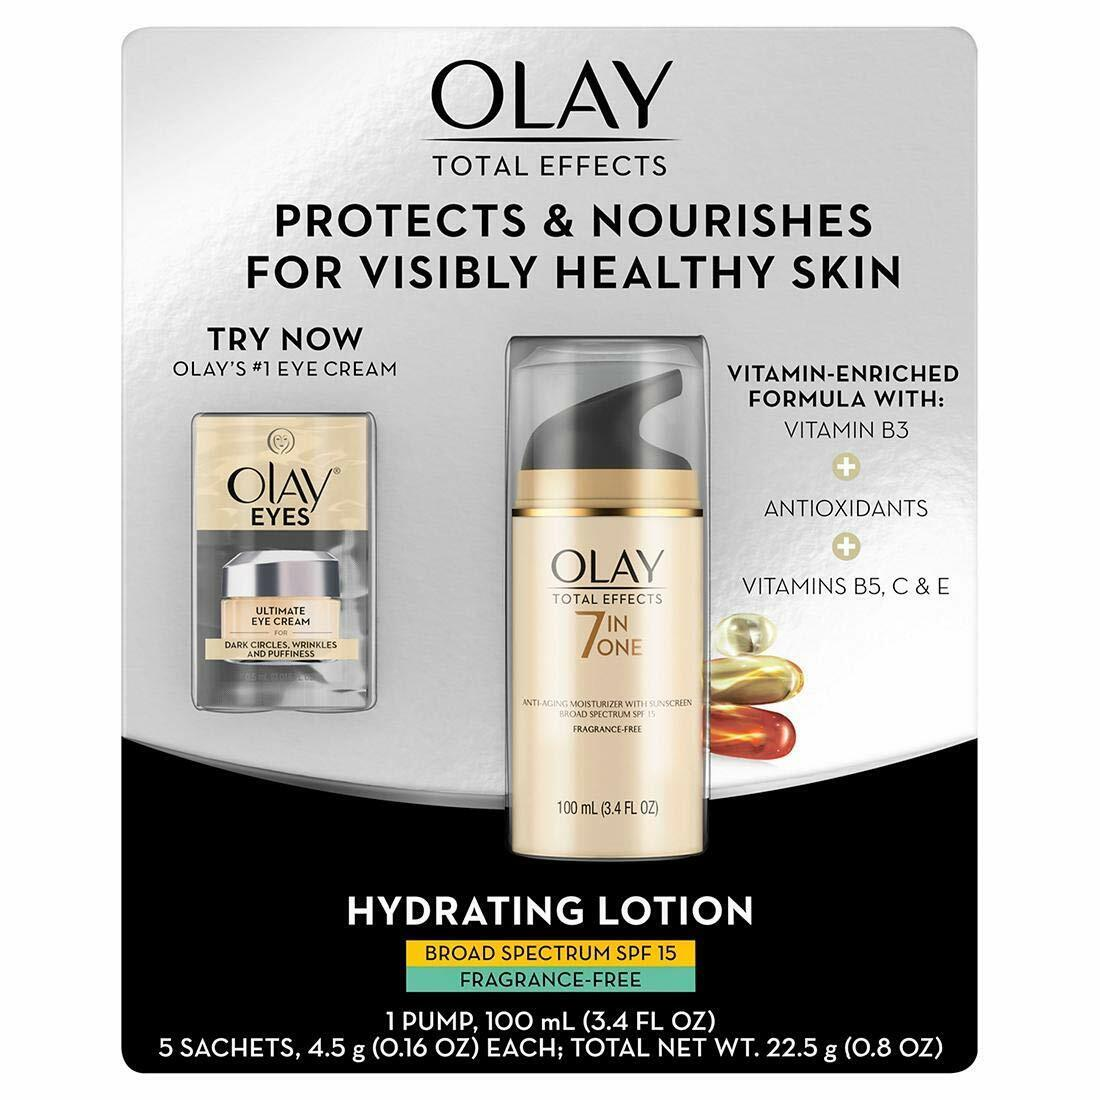 Olay Total Effects SPF 15 Fragrance-Free Face Moisturizer,